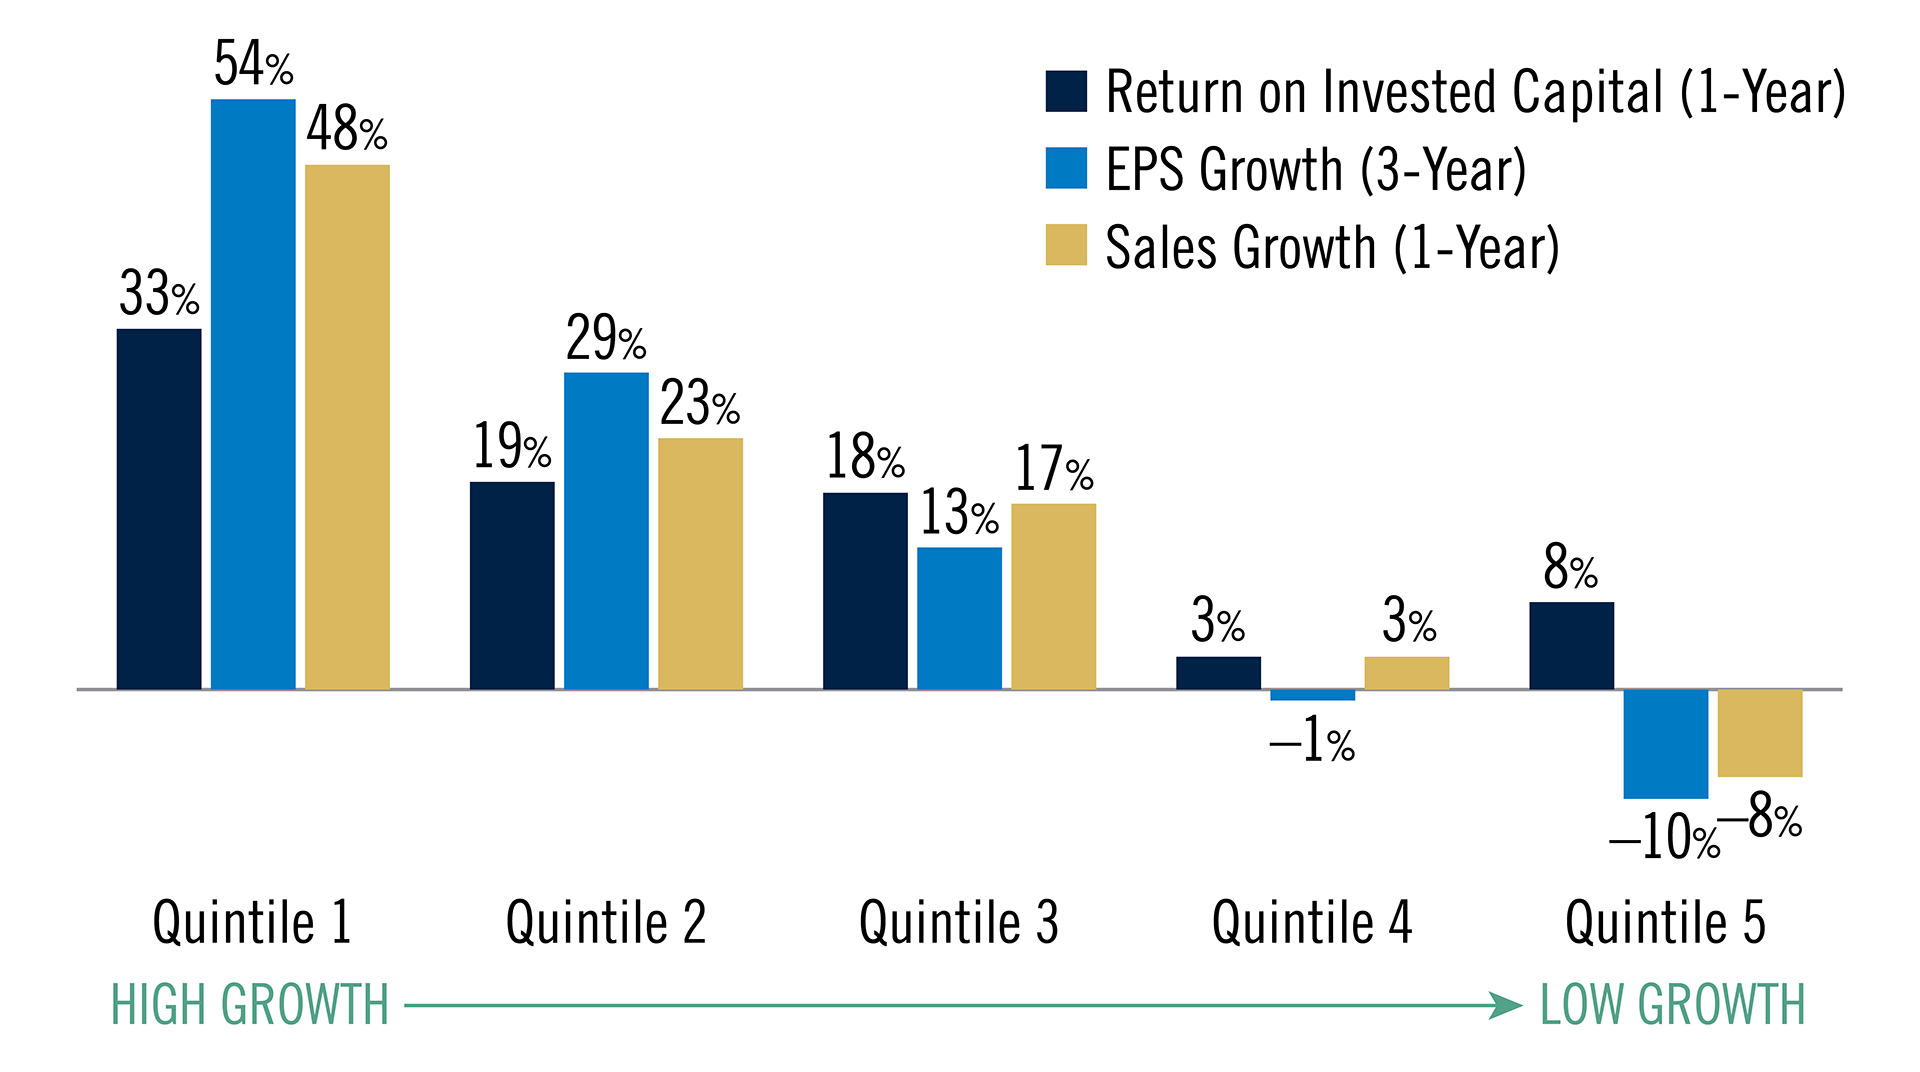 Chart shows returns by quintile based on 1-year Return on Invested Capital, 3-year EPS growth, and 3-year sales growth for the MSCI ACWI index. For each metric, quintile 1, which is the highest growth quintile outperformed quintile 5 which is the lowest growth quintile.